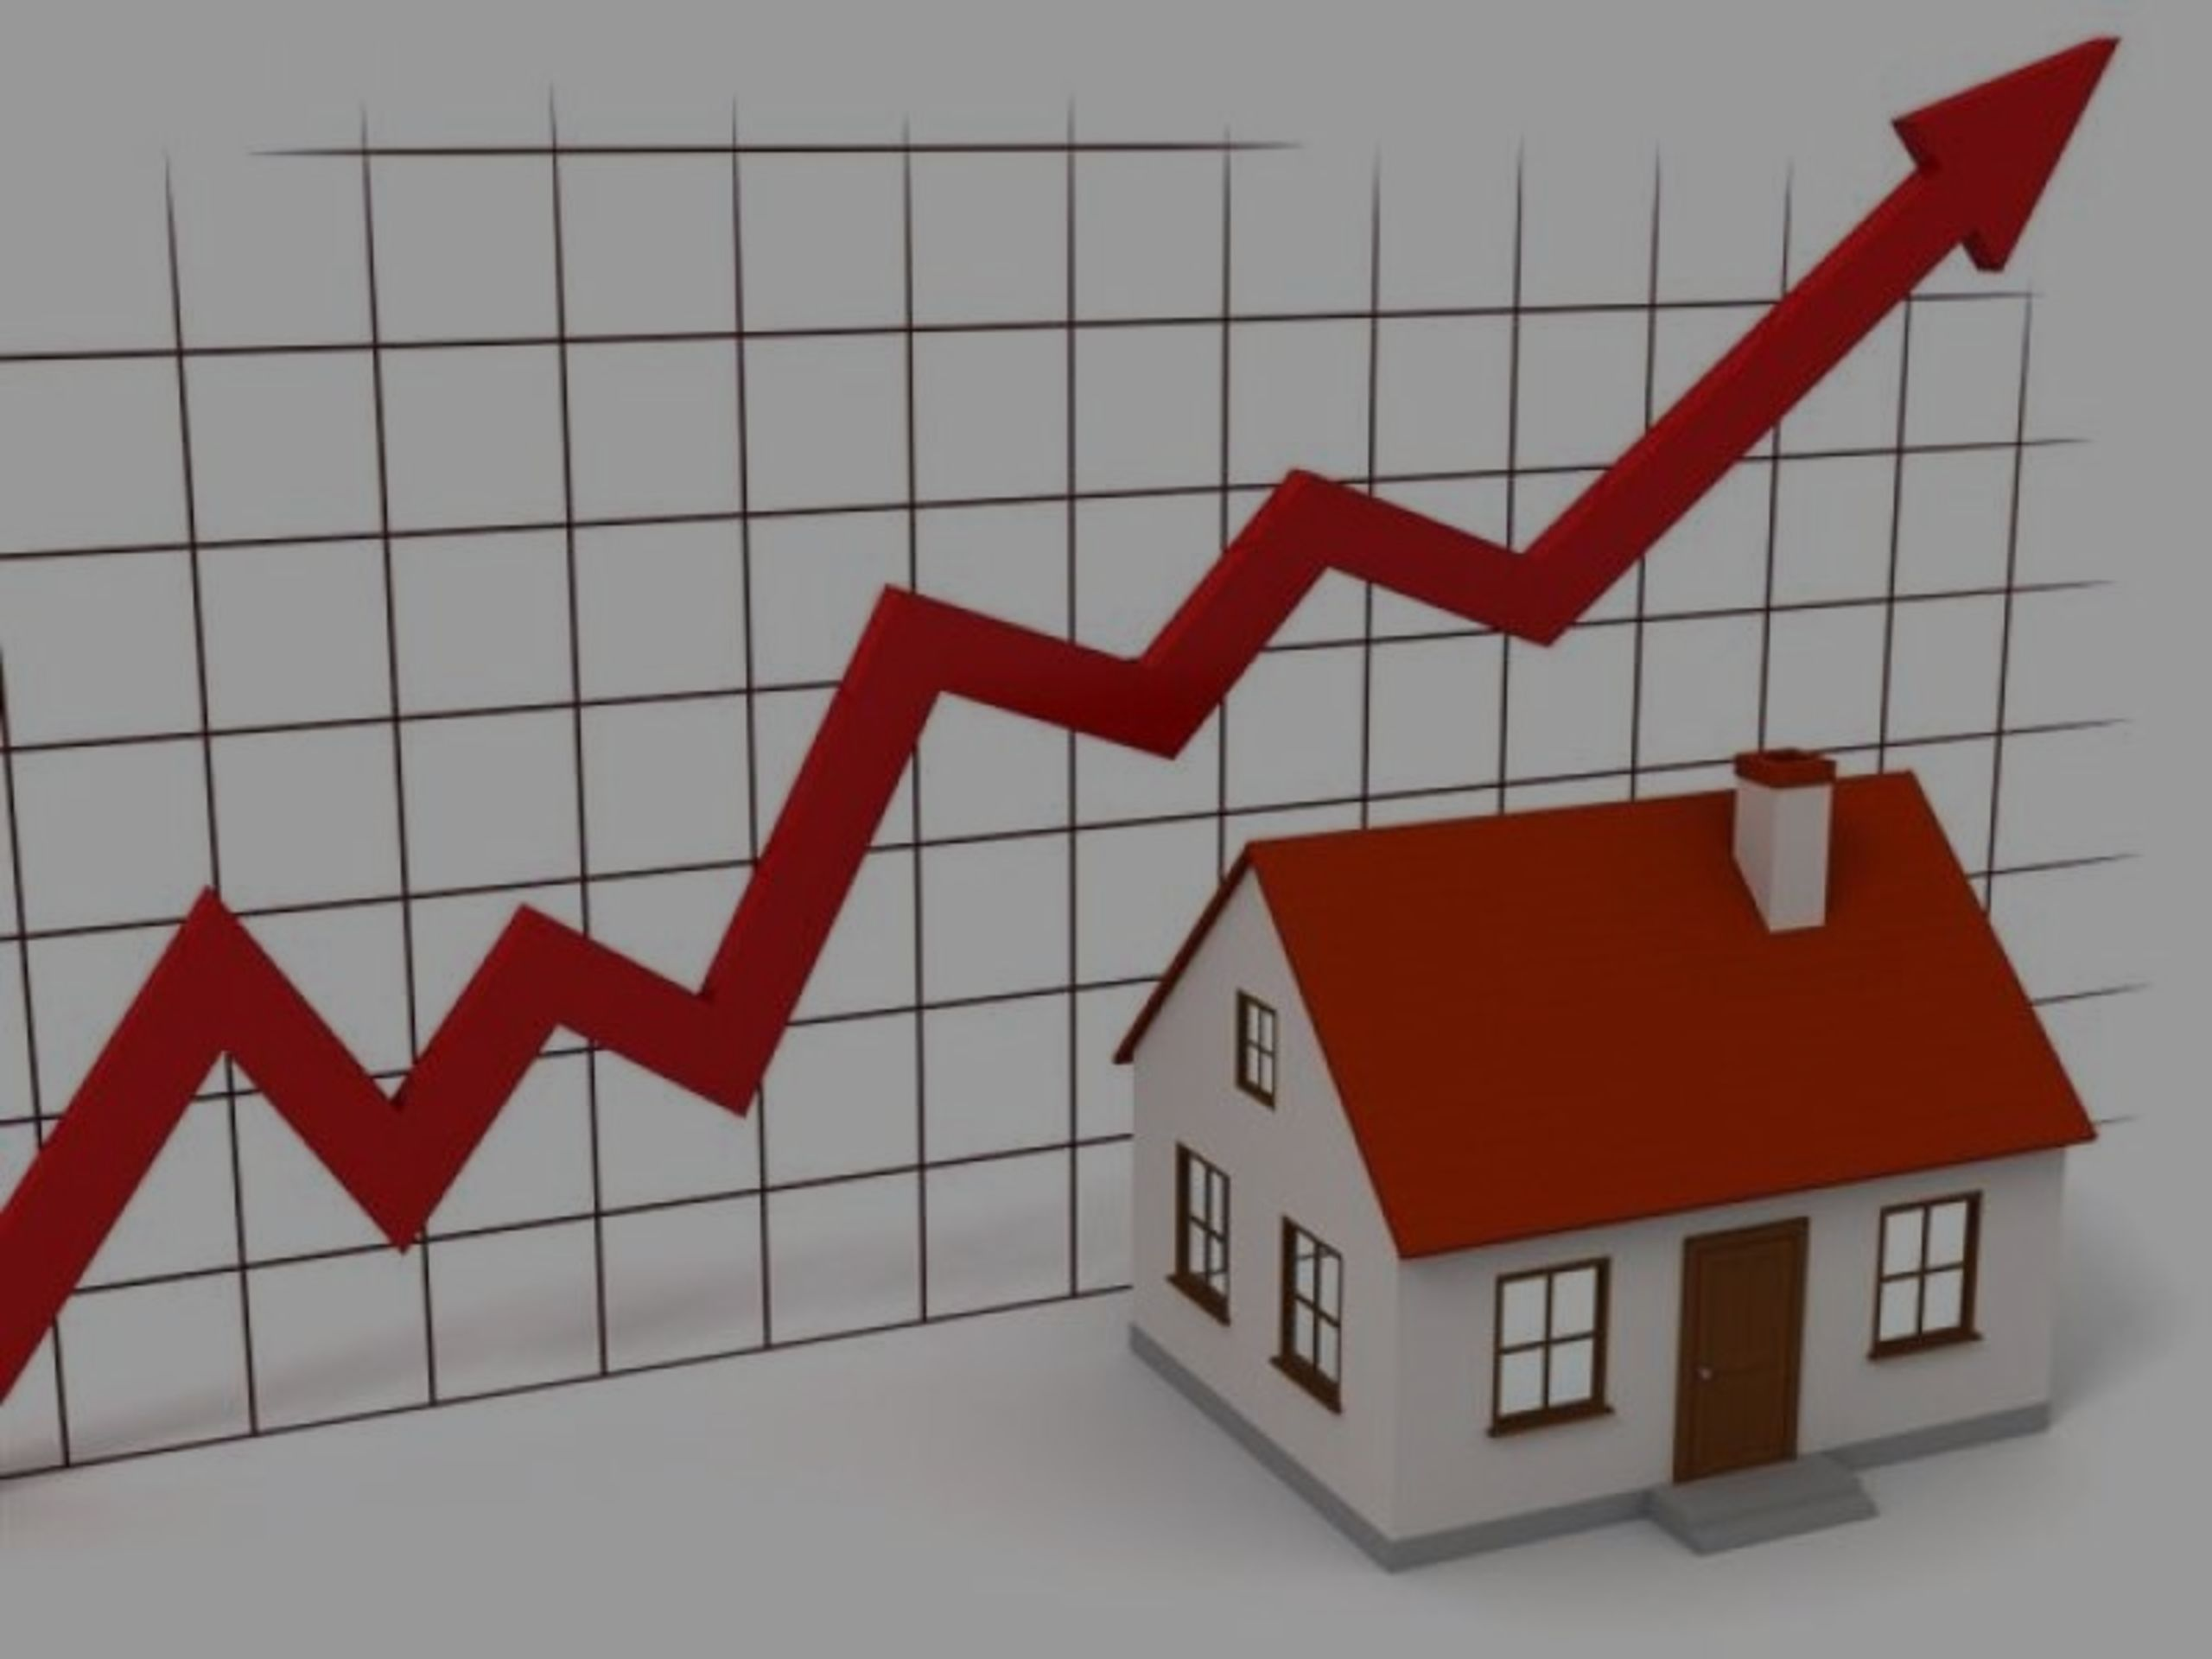 Fla.'s housing market continues positive track in Feb. 2018